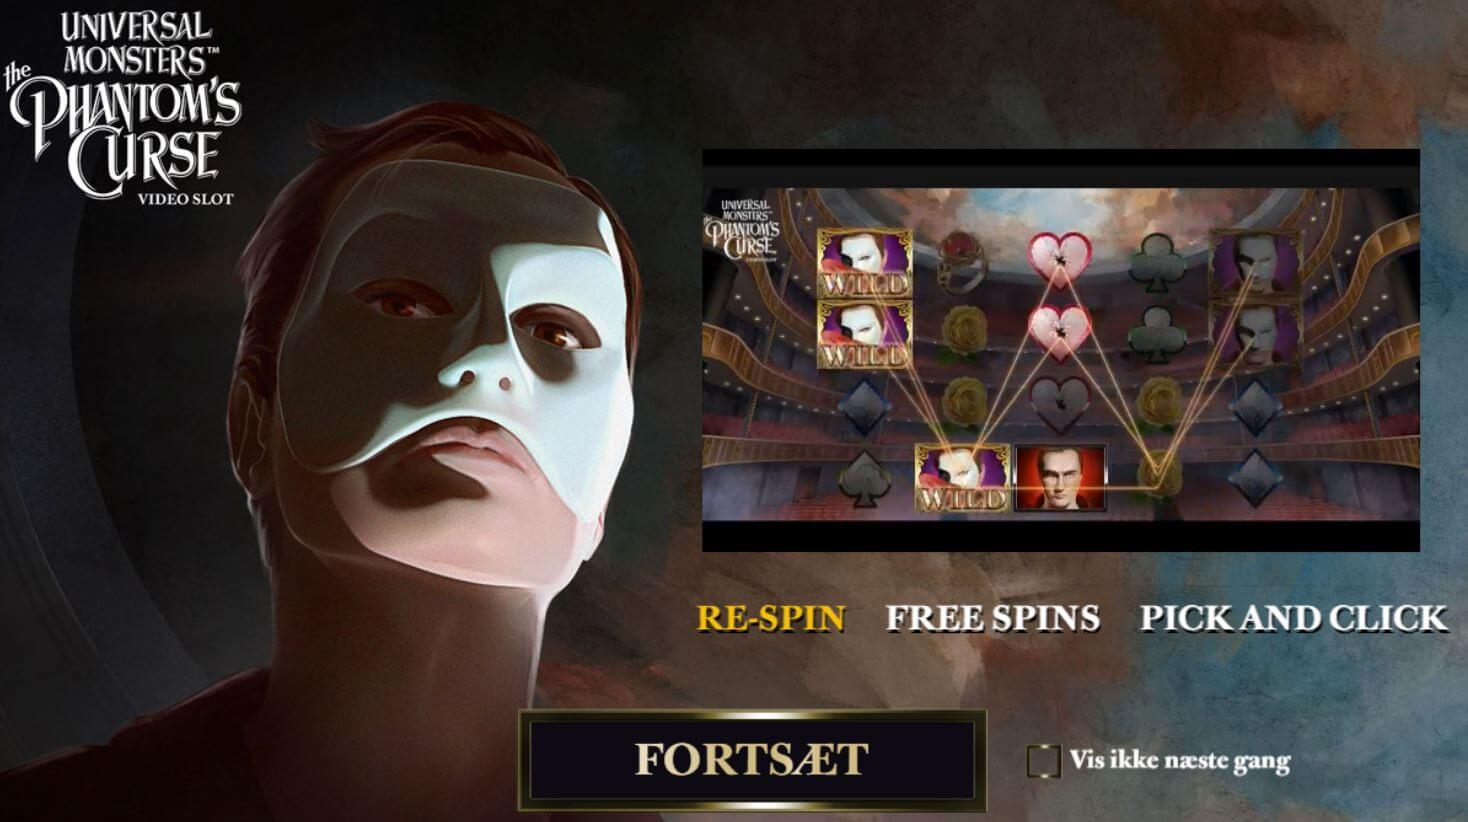 Universal Monsters: Phantom's Curse spilleautomat - free spins